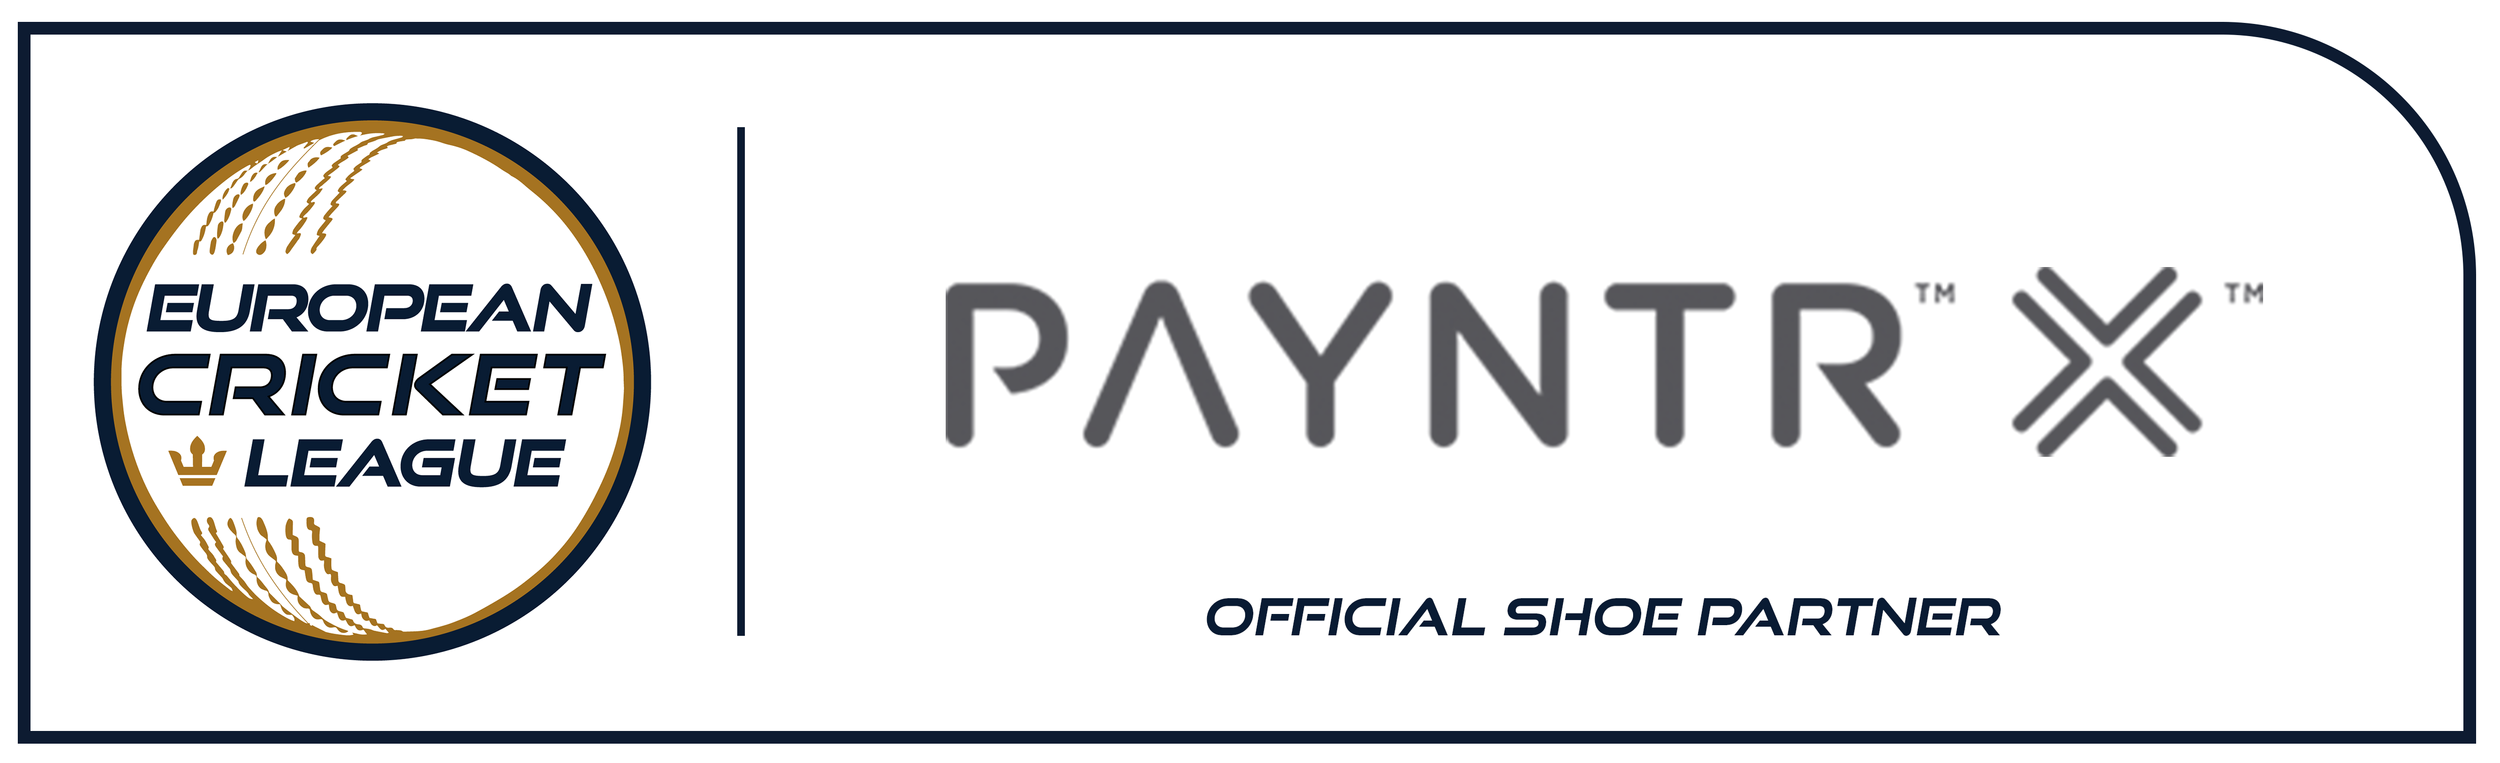 Payntr Shoe partner.png